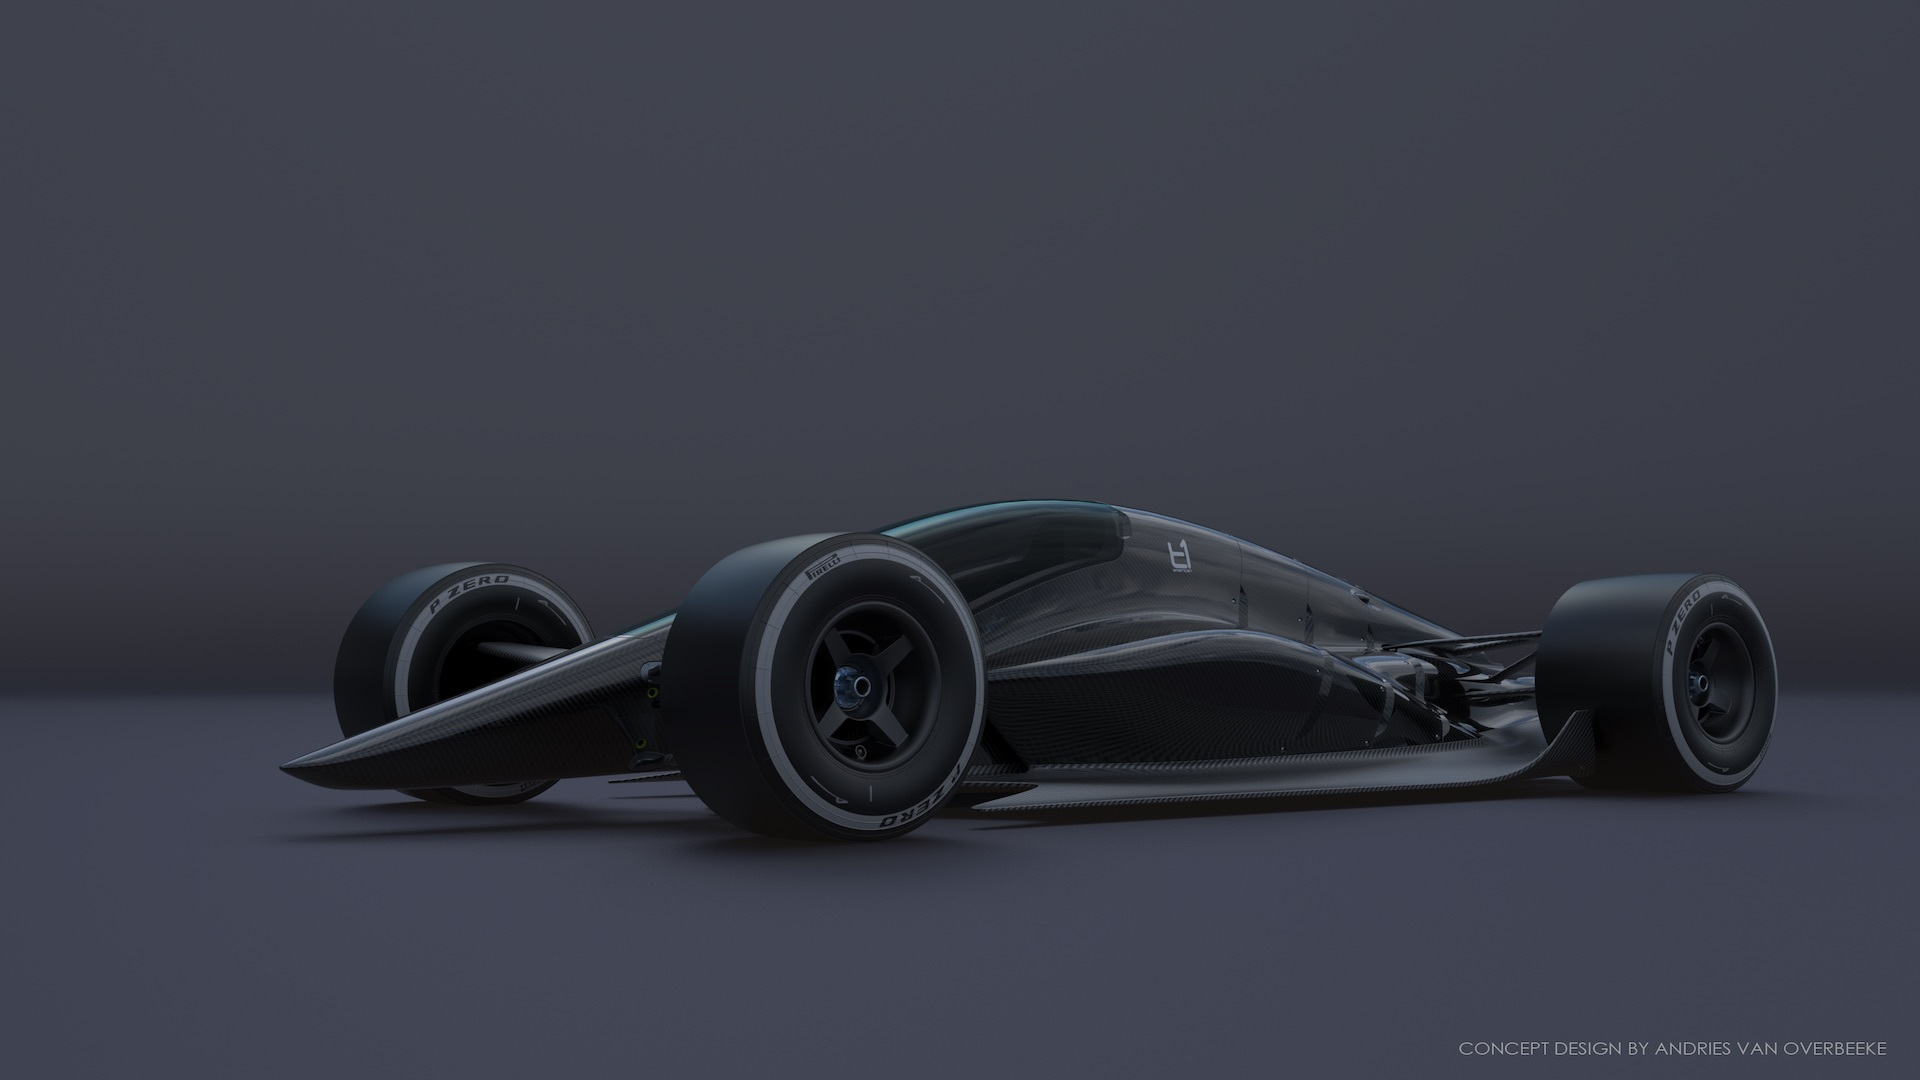 T1 Turbine concept race car